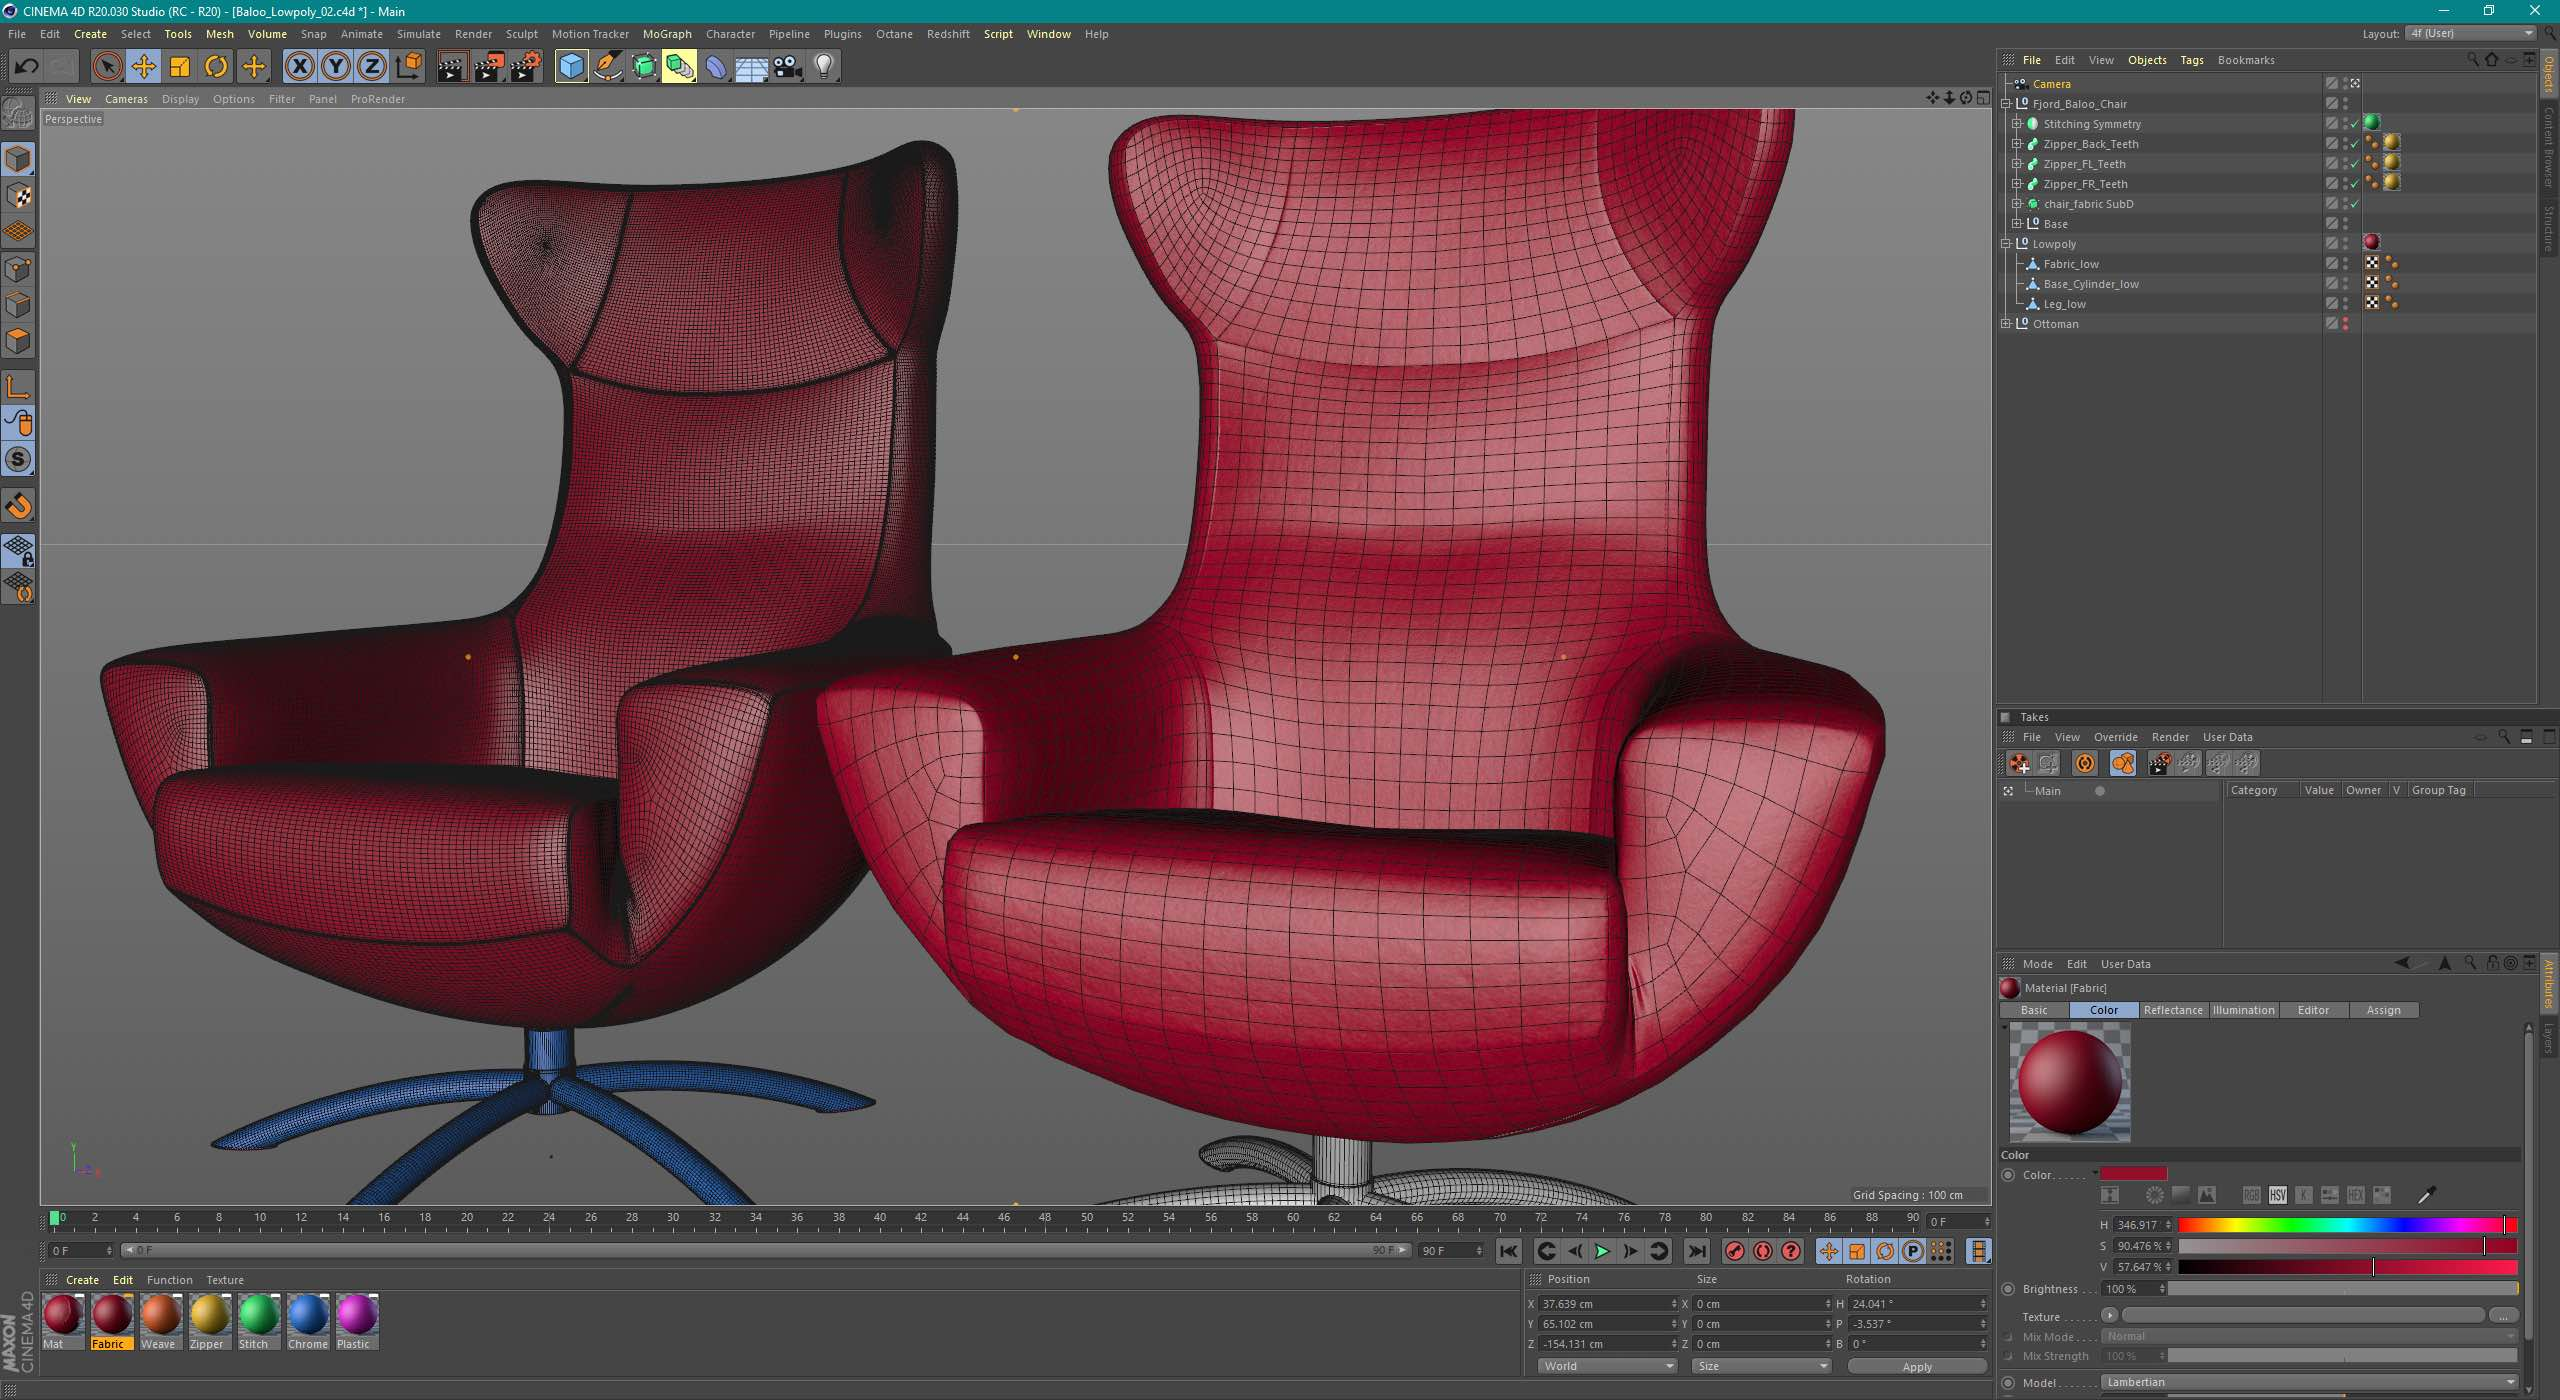 Two red armchair models in 3D rendering program Cinema 4D to build AR experience